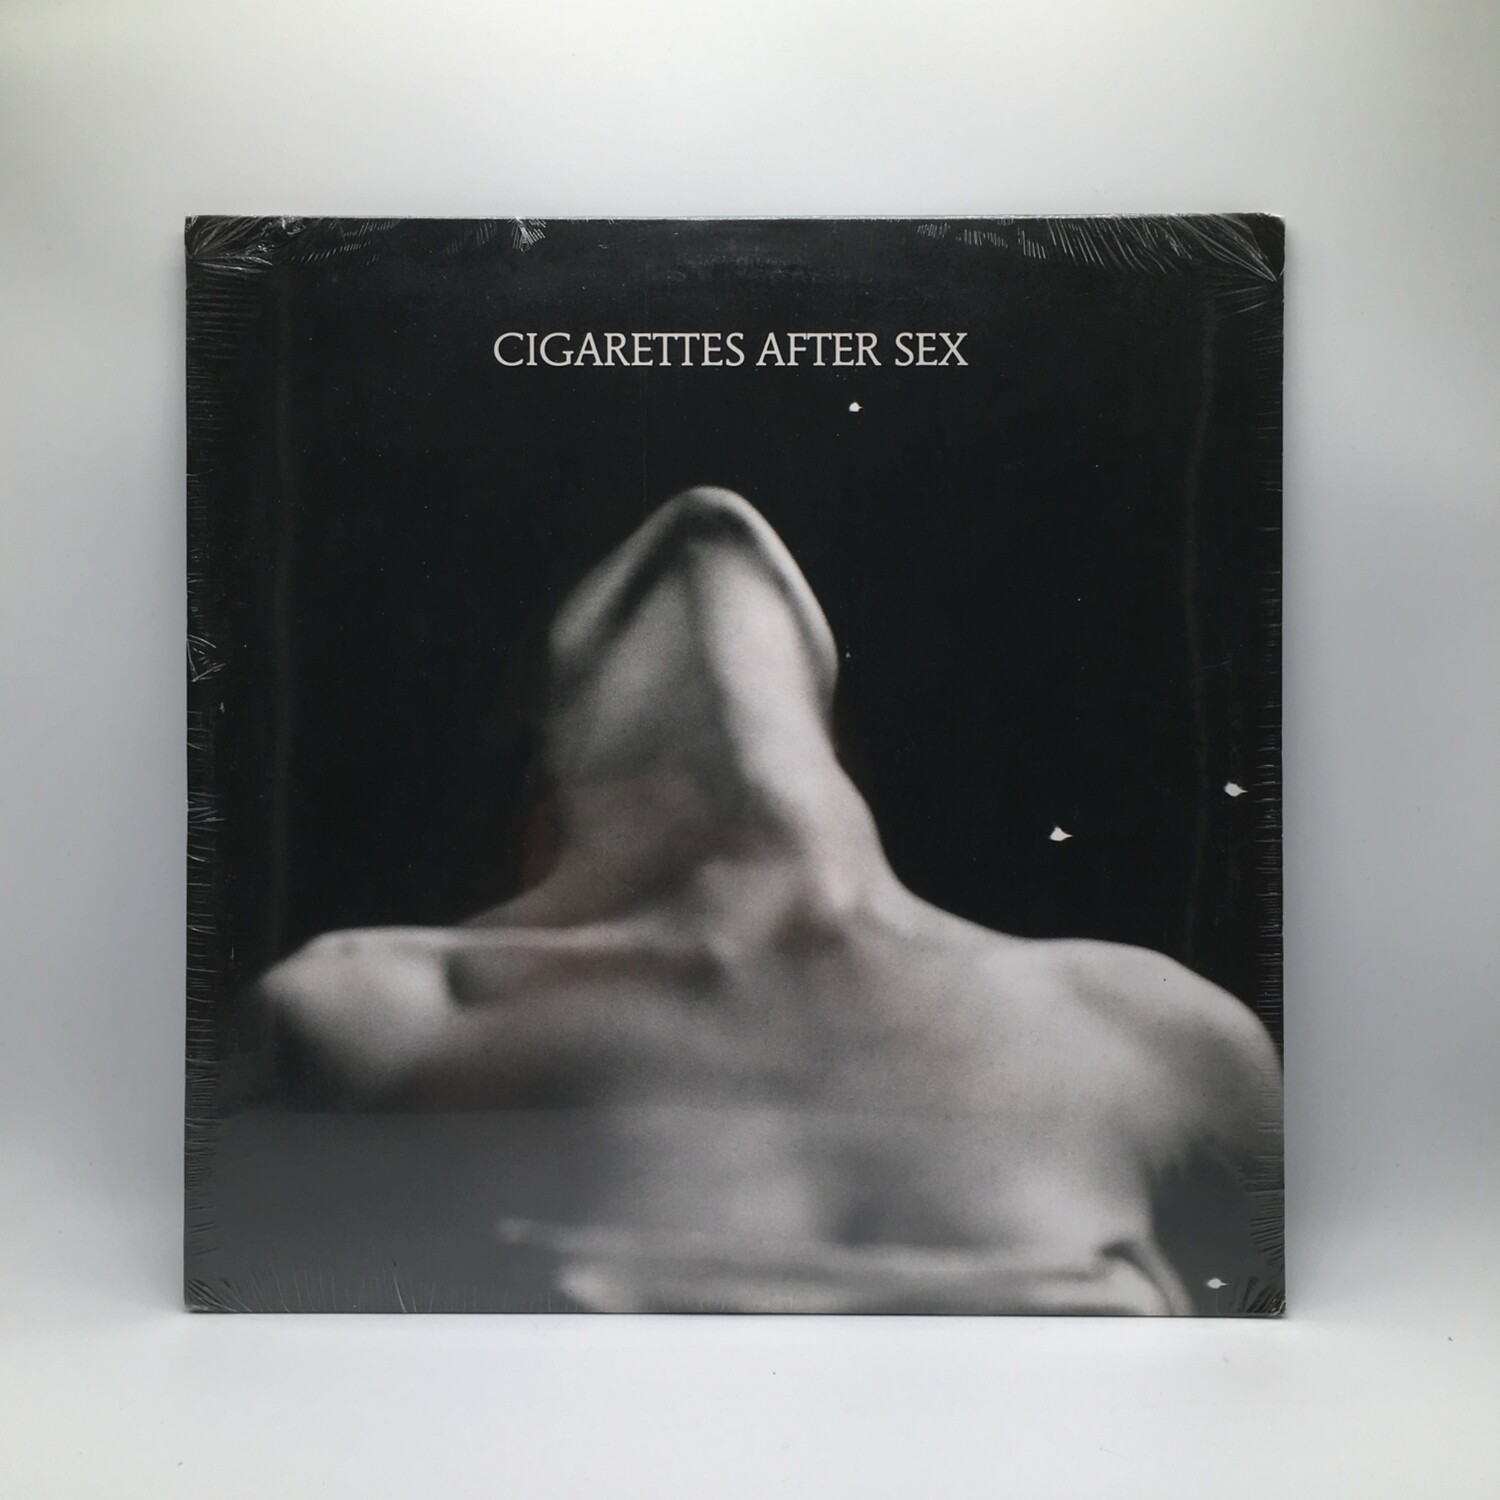 CIGARETTES AFTER SEX -EP1- 12 INCH VINYL